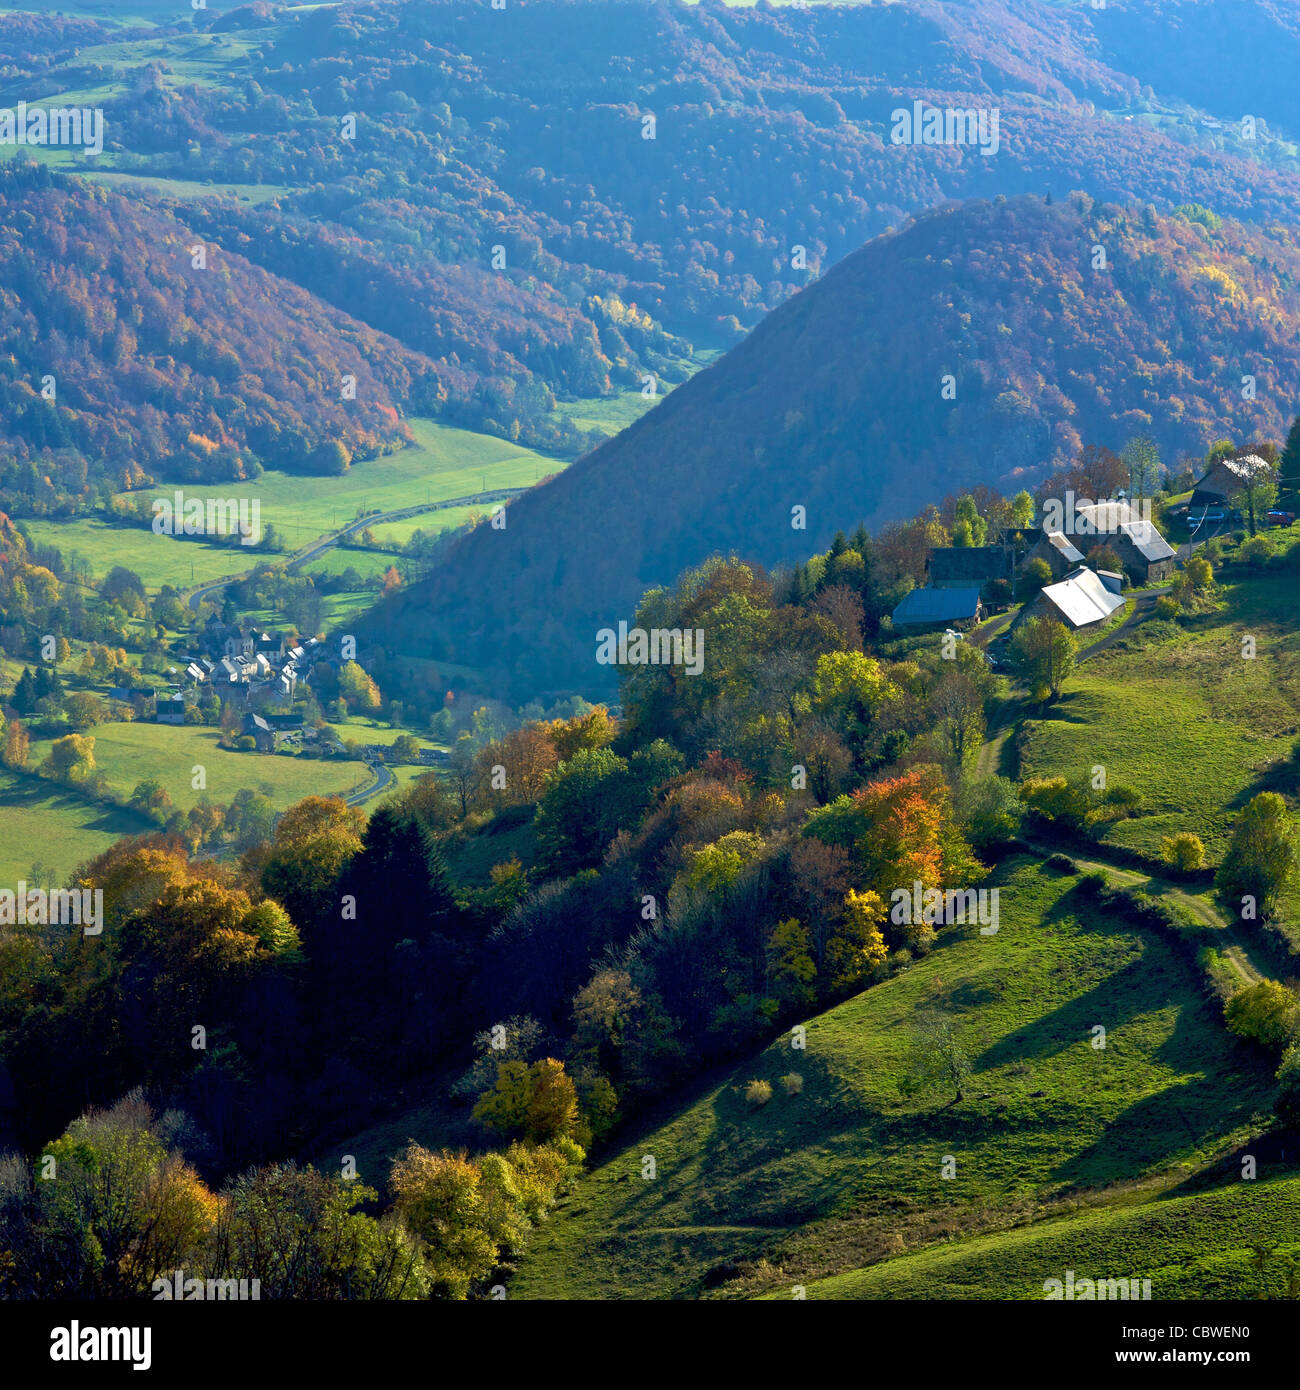 Village at the bottom of a green valley in Auvergne, France. - Stock Image